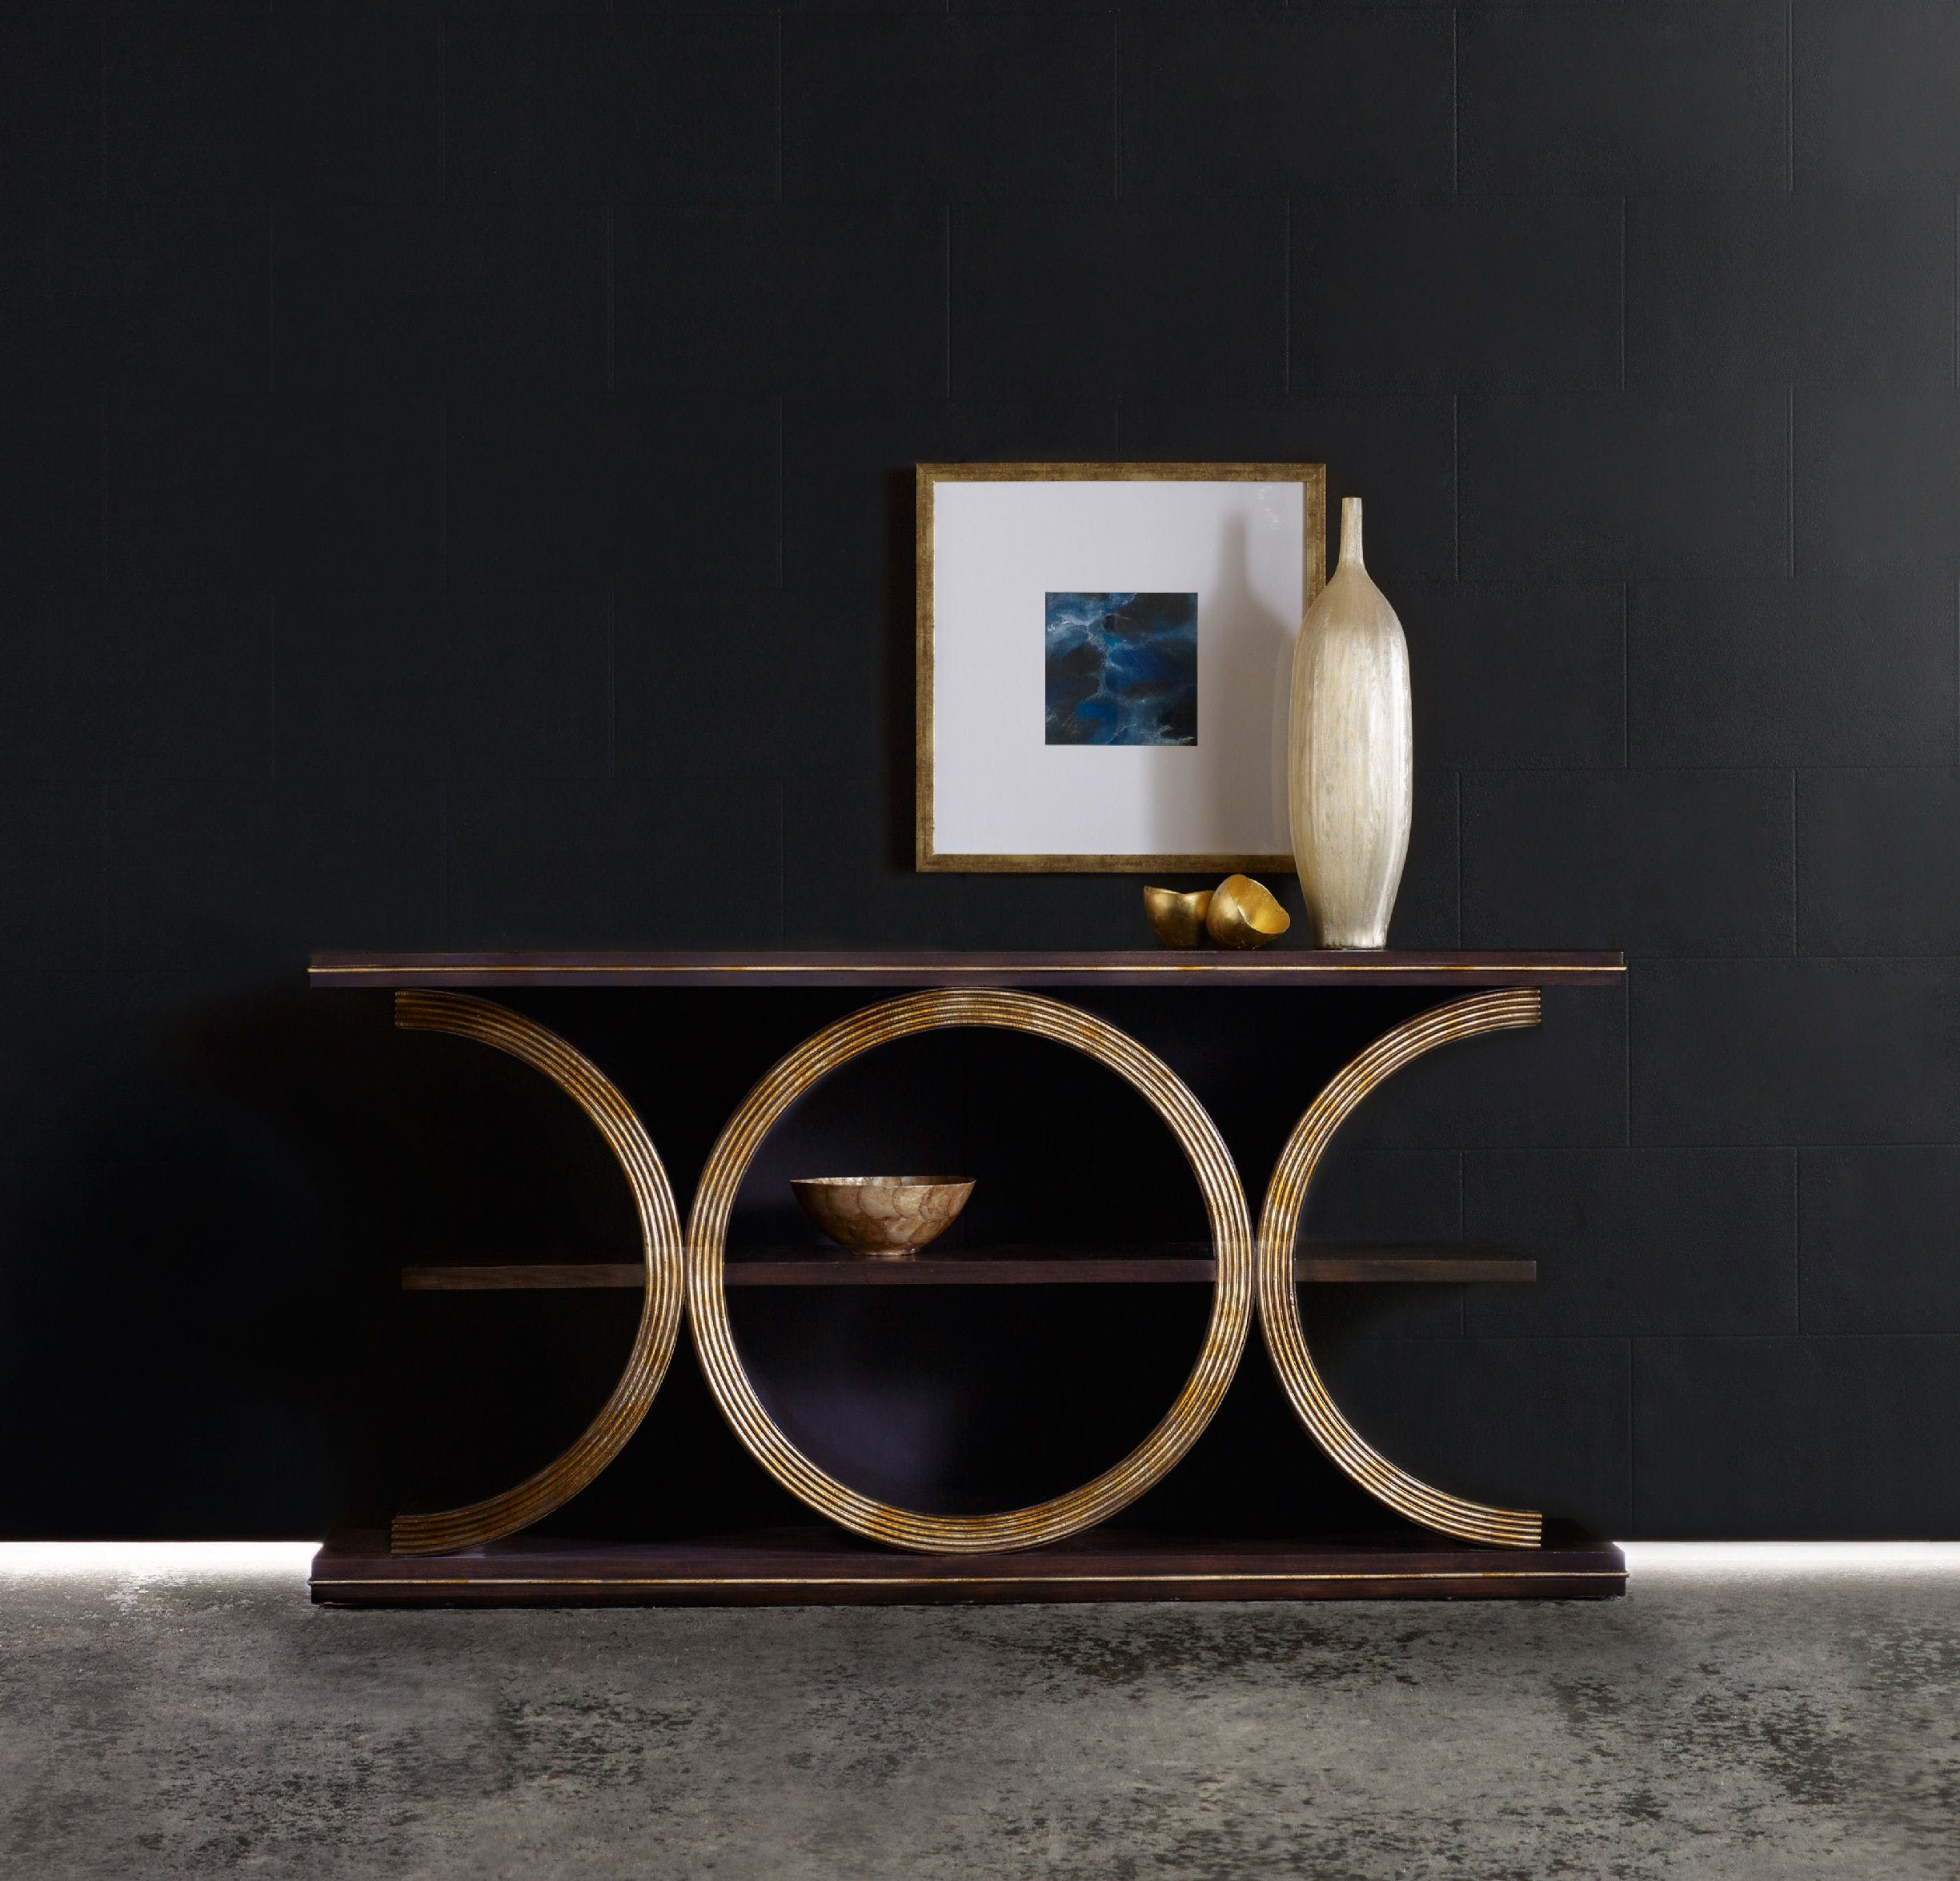 console tables 10 Console Tables With An Exquisite Geometric Design 6 10 Console Tables With An Exquisite Geometric Design